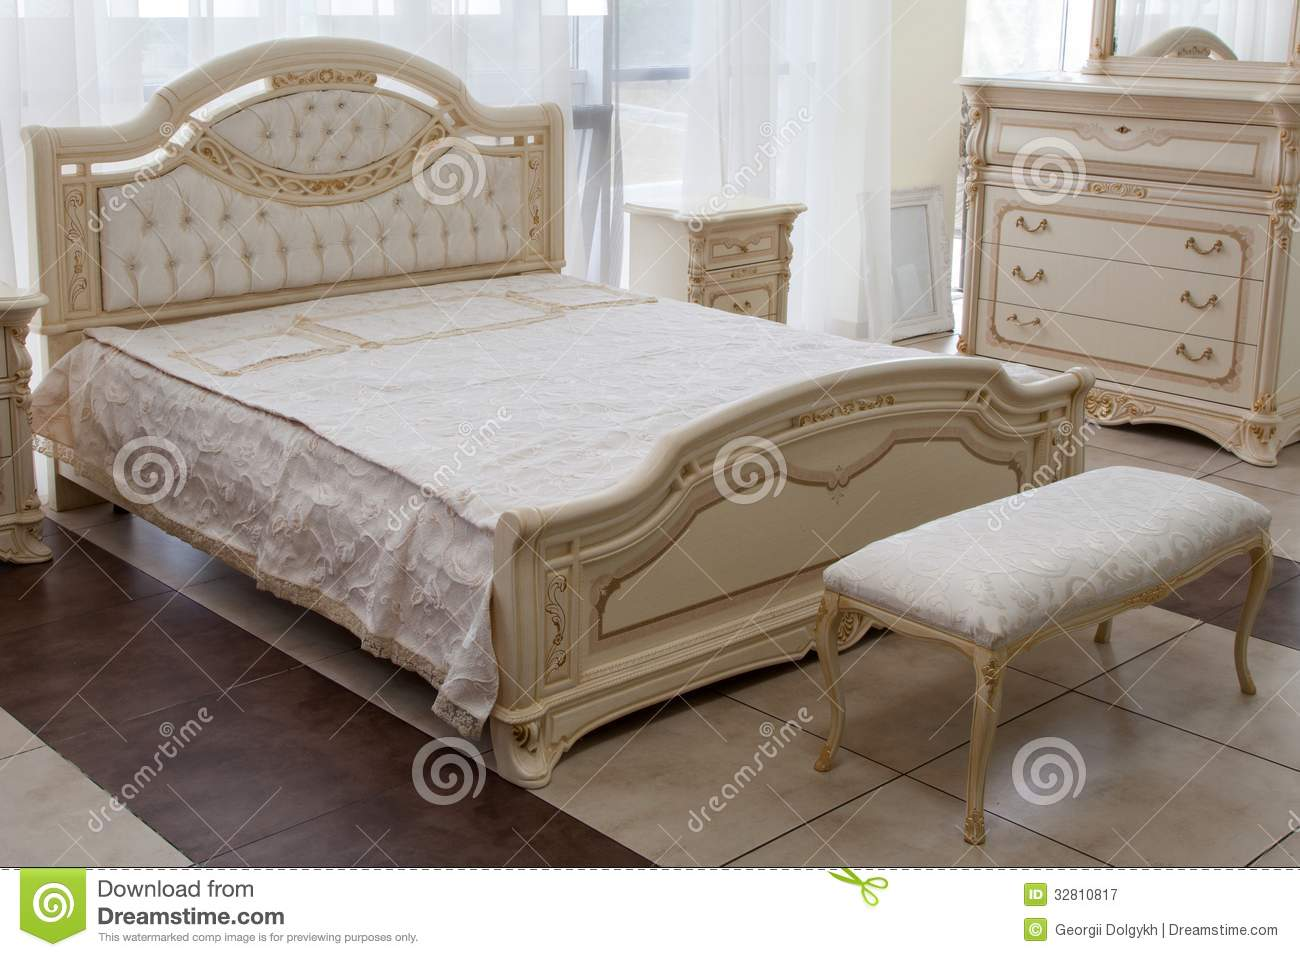 Awesome chambre a coucher royal italy images design for Chambre a coucher ultra moderne